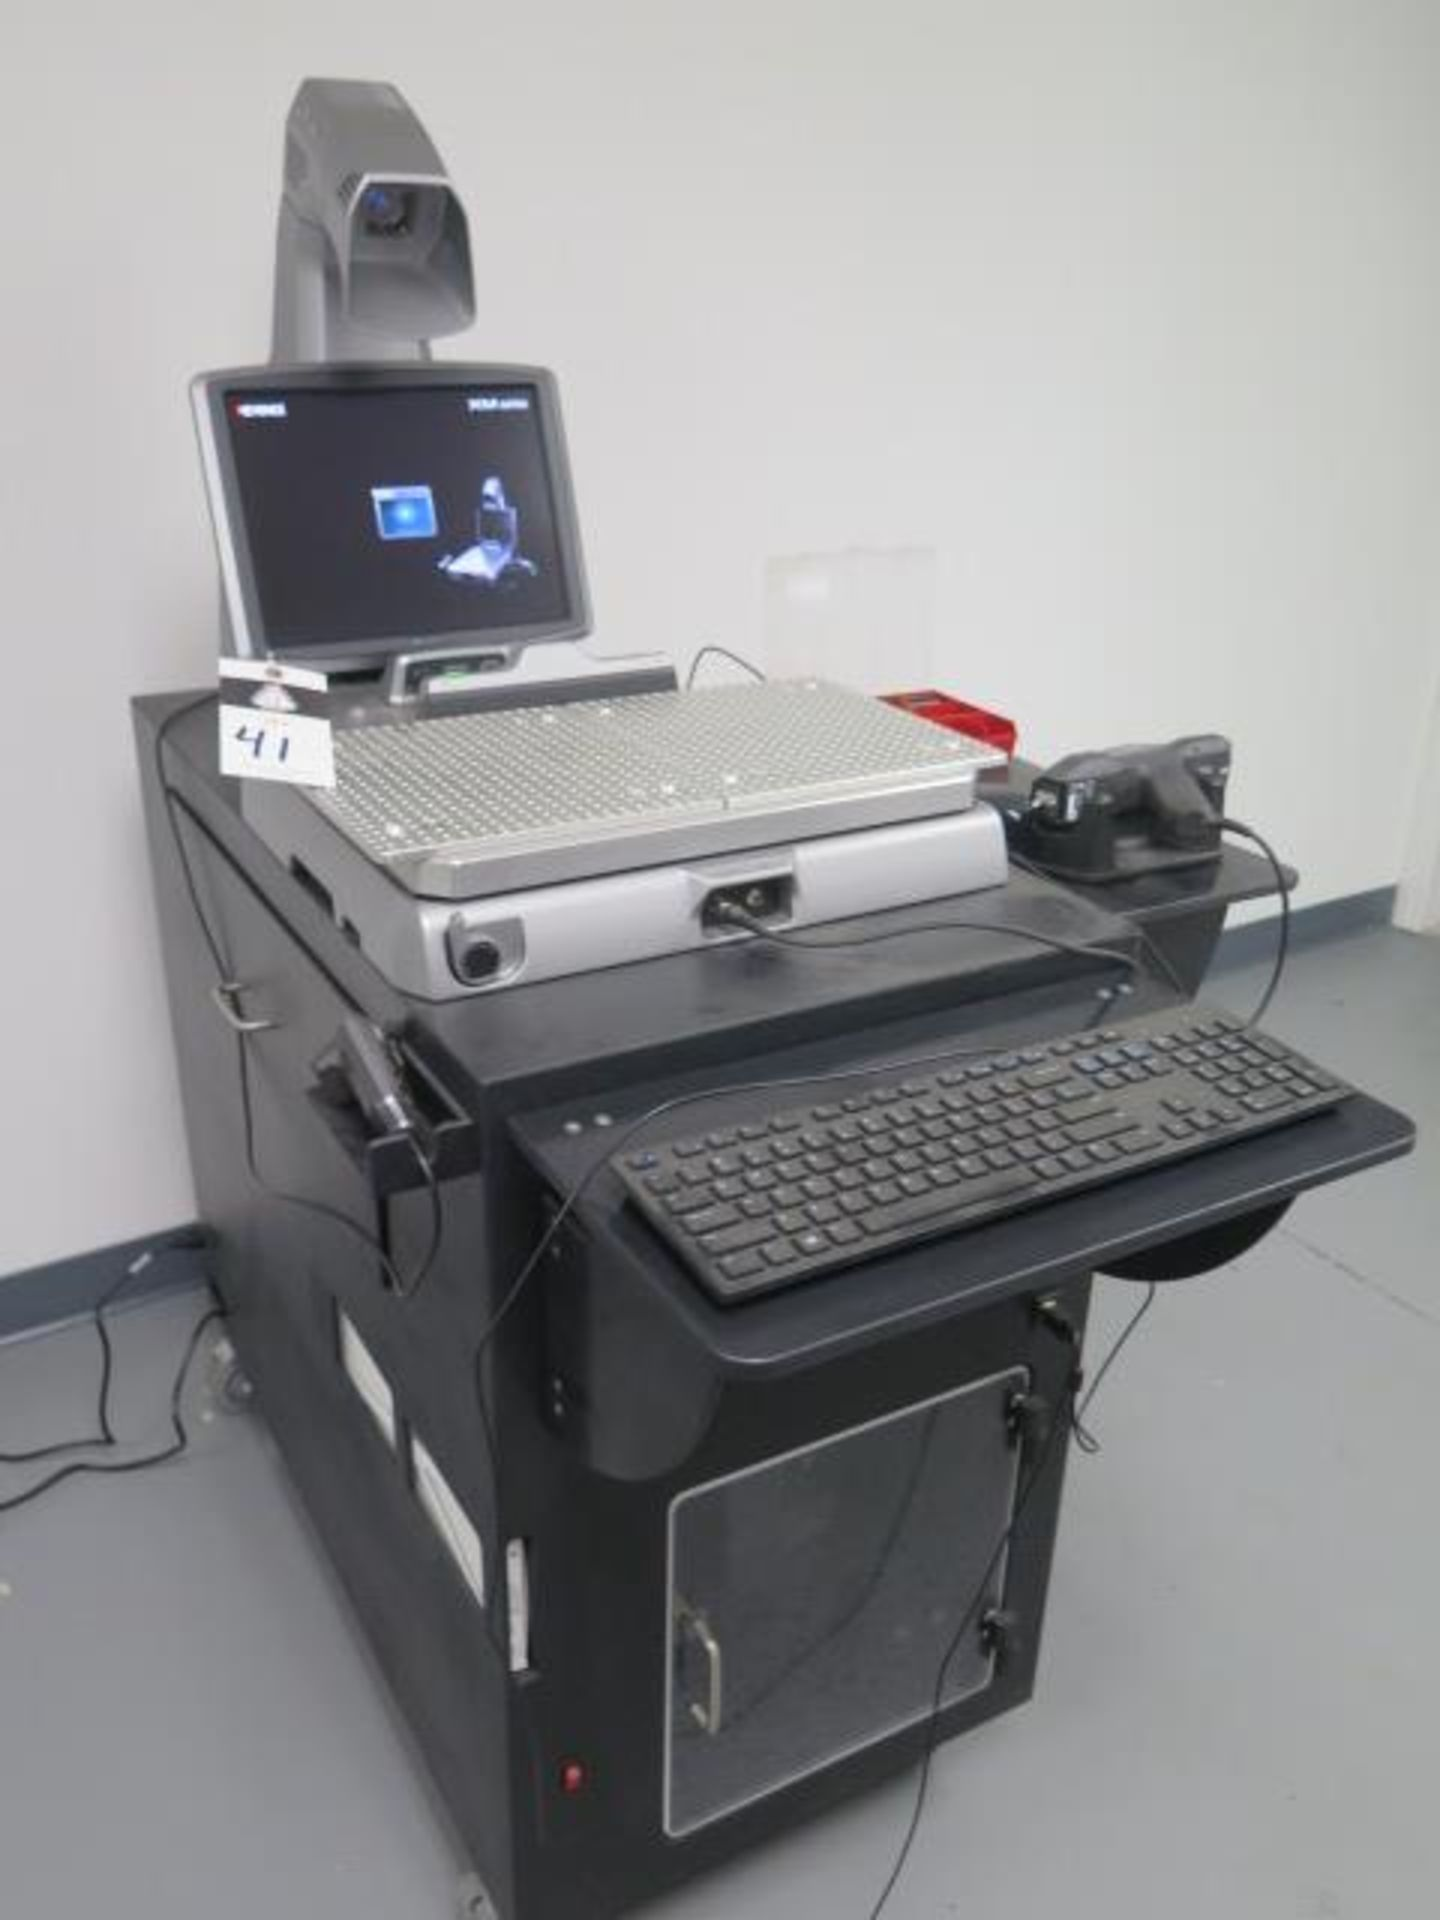 2020 Keyance XM-1200 Handheld Probe CMM s/n 4B910044 Camera and Single Probe System, SOLD AS IS - Image 2 of 23